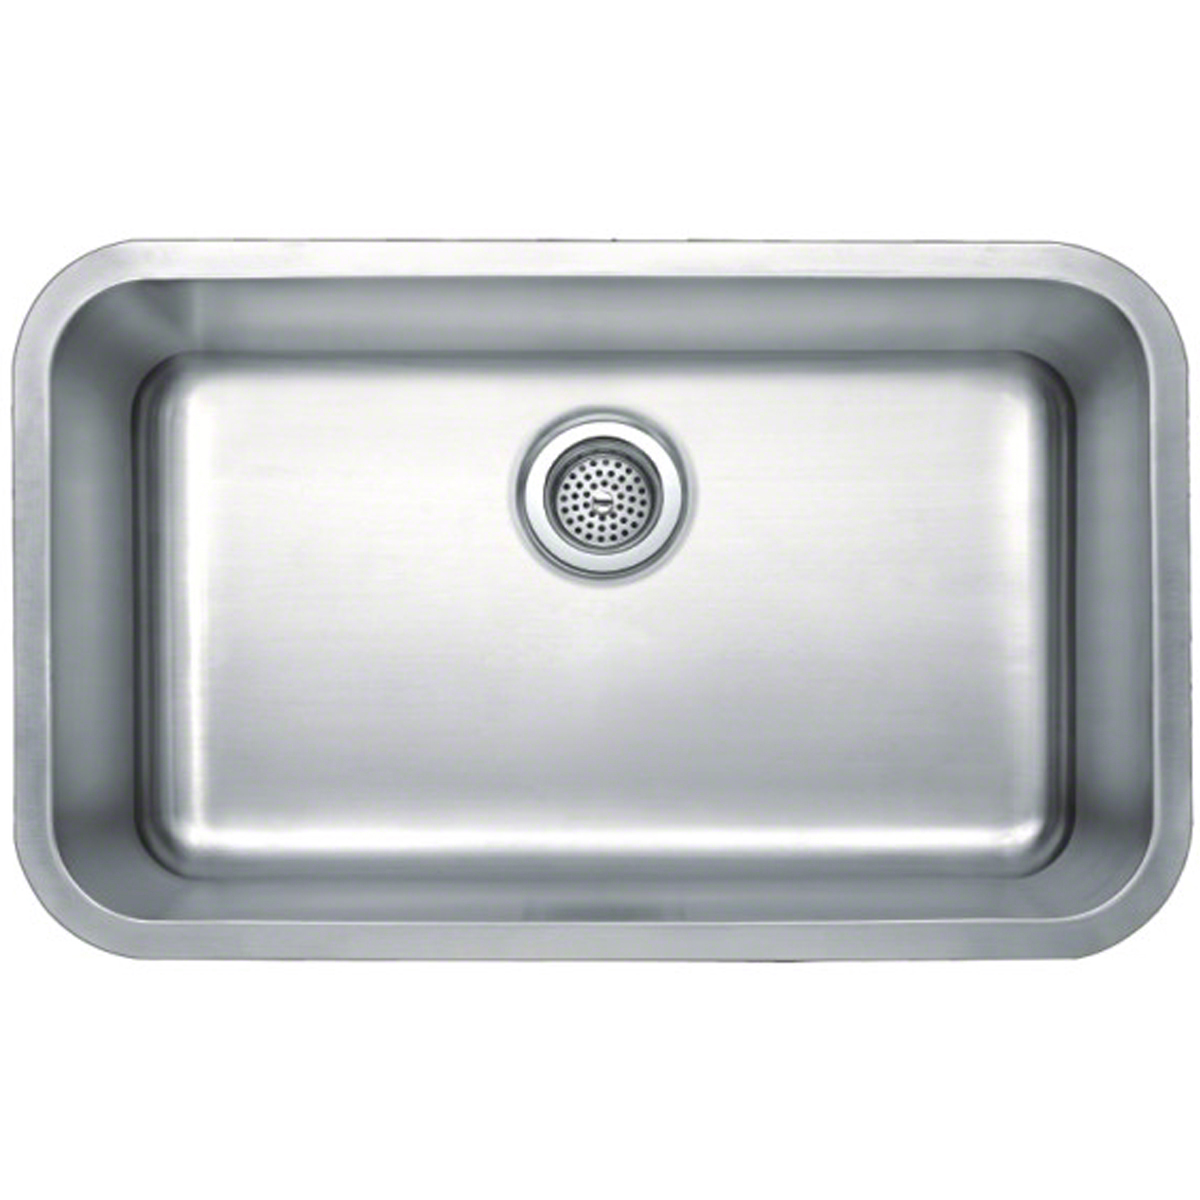 Kitchen Single Bowl Sinks Msi kitchen under mount sink sin 18 sinbwl 3018 sinere home decor click to view large image workwithnaturefo